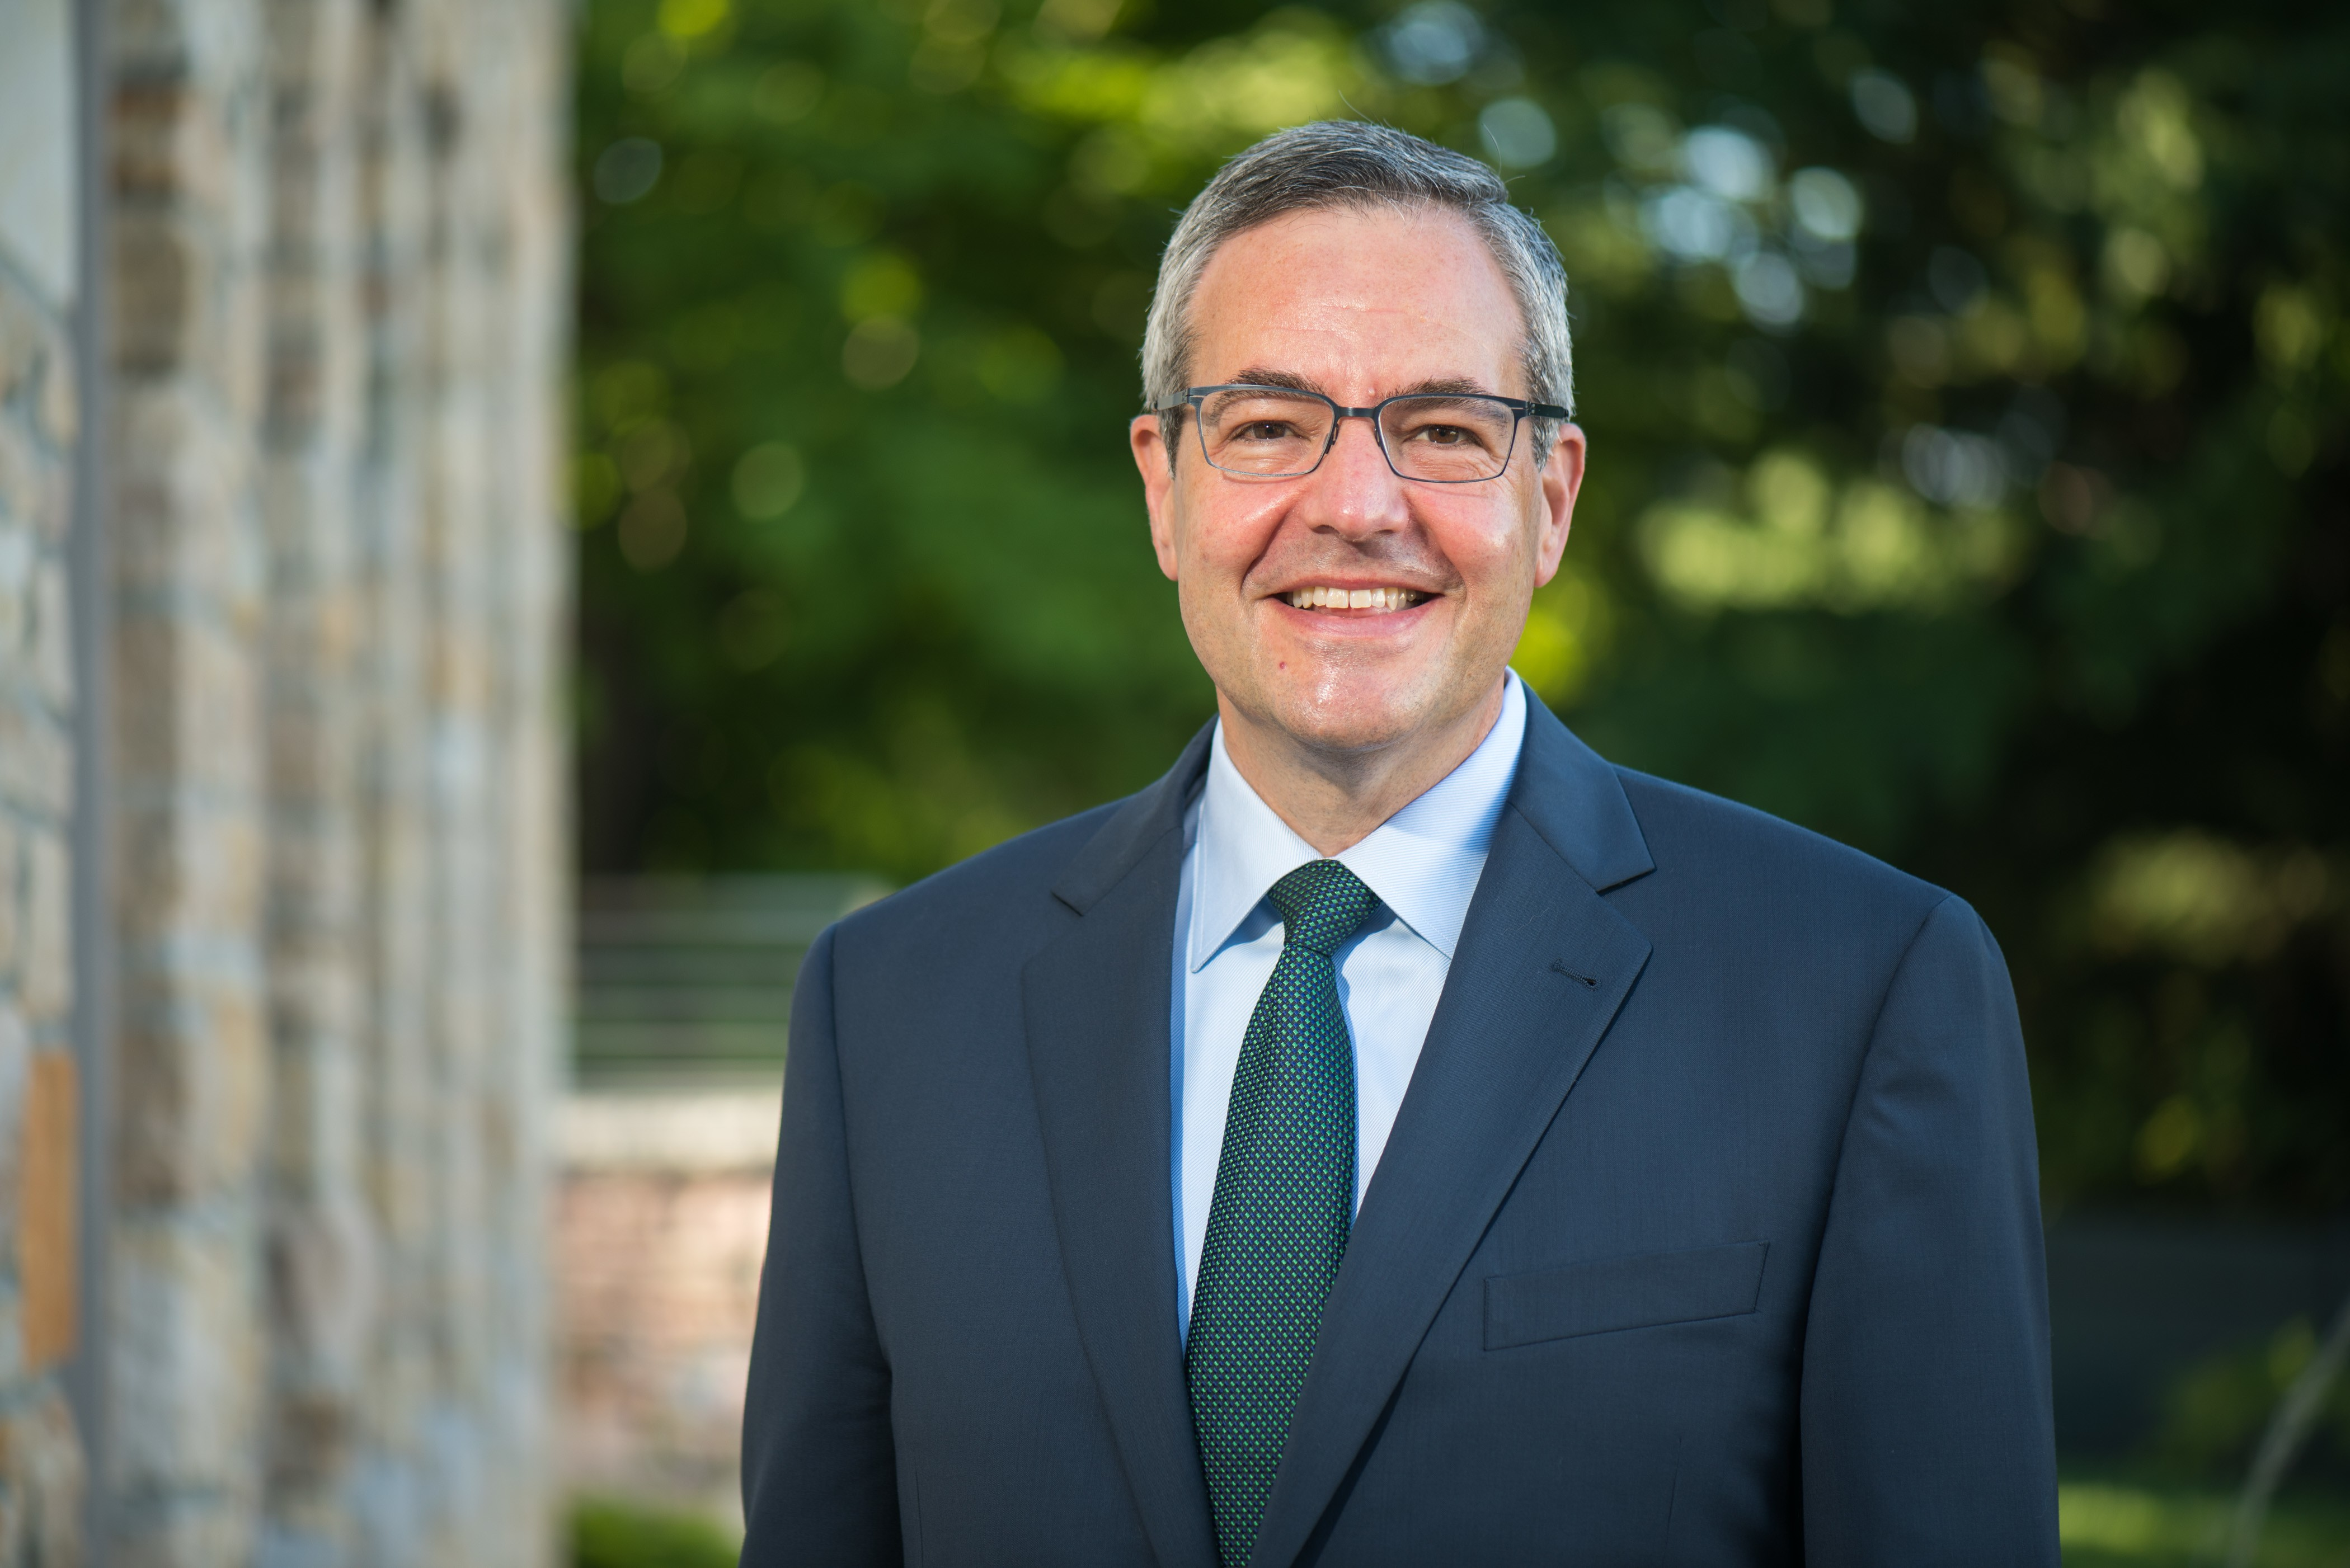 President of Champlain College to Step Down